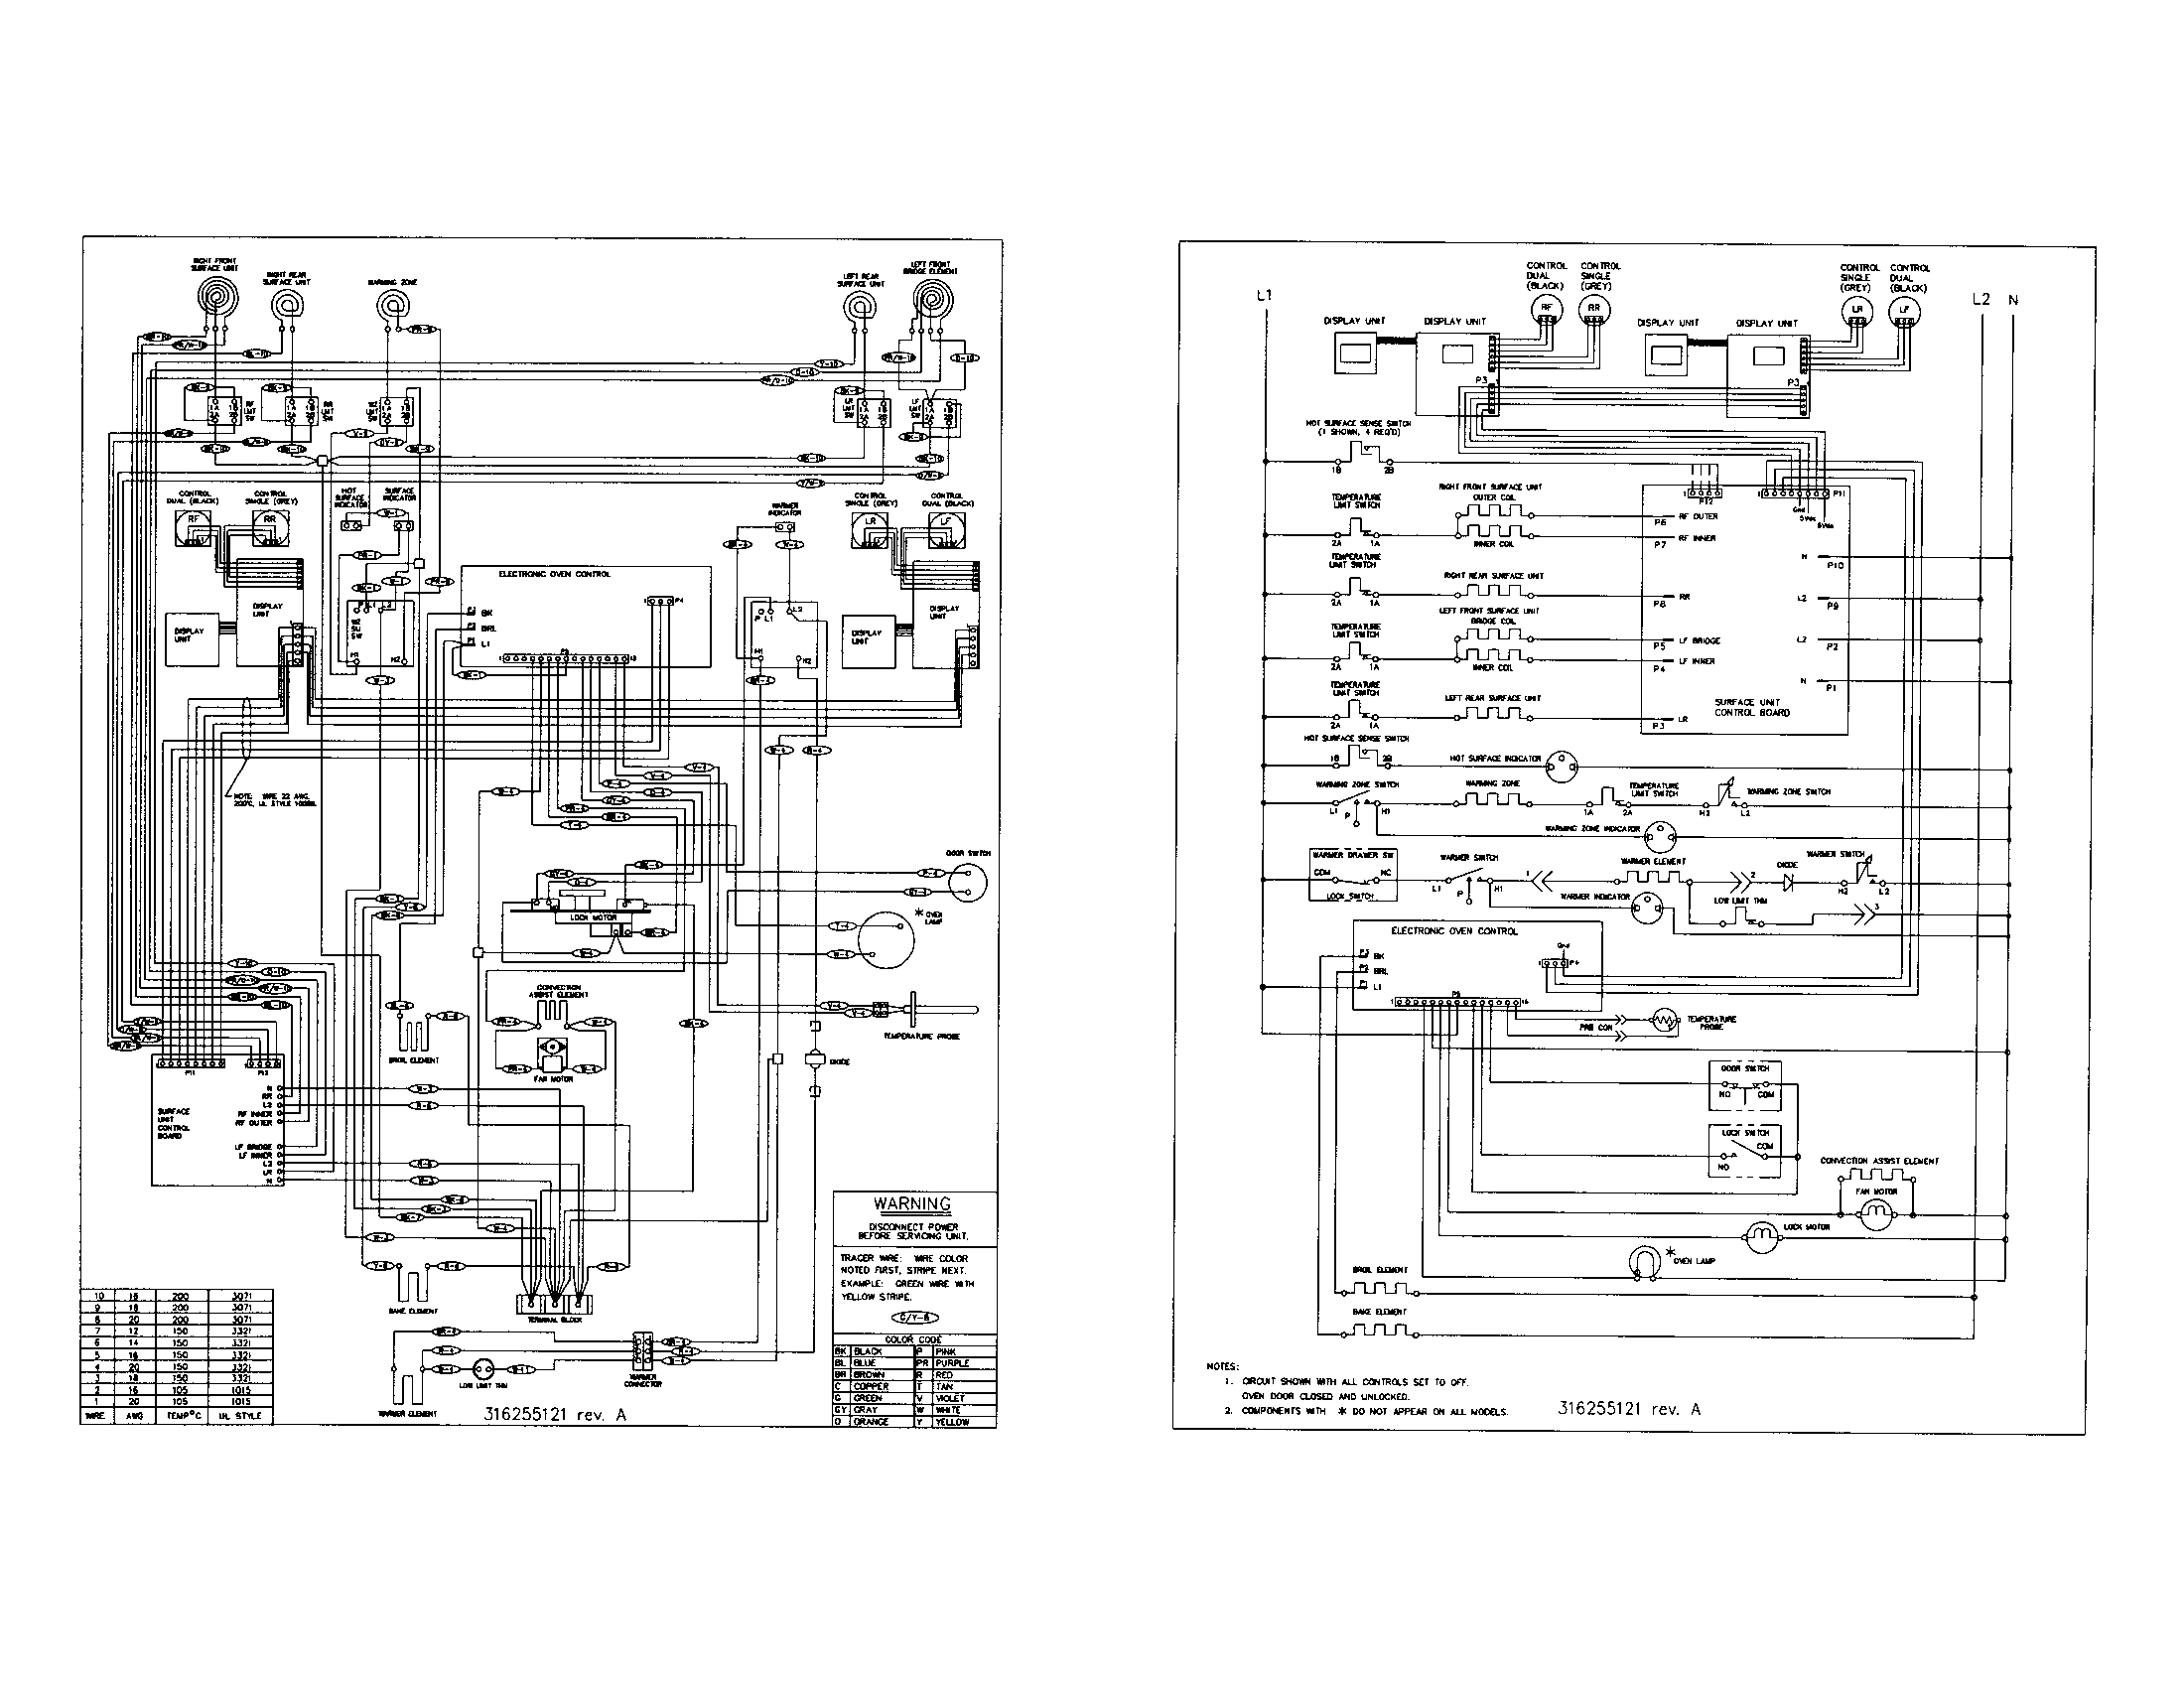 ge wiring diagram ge image wiring diagram ge wiring diagrams ge wiring diagrams on ge wiring diagram